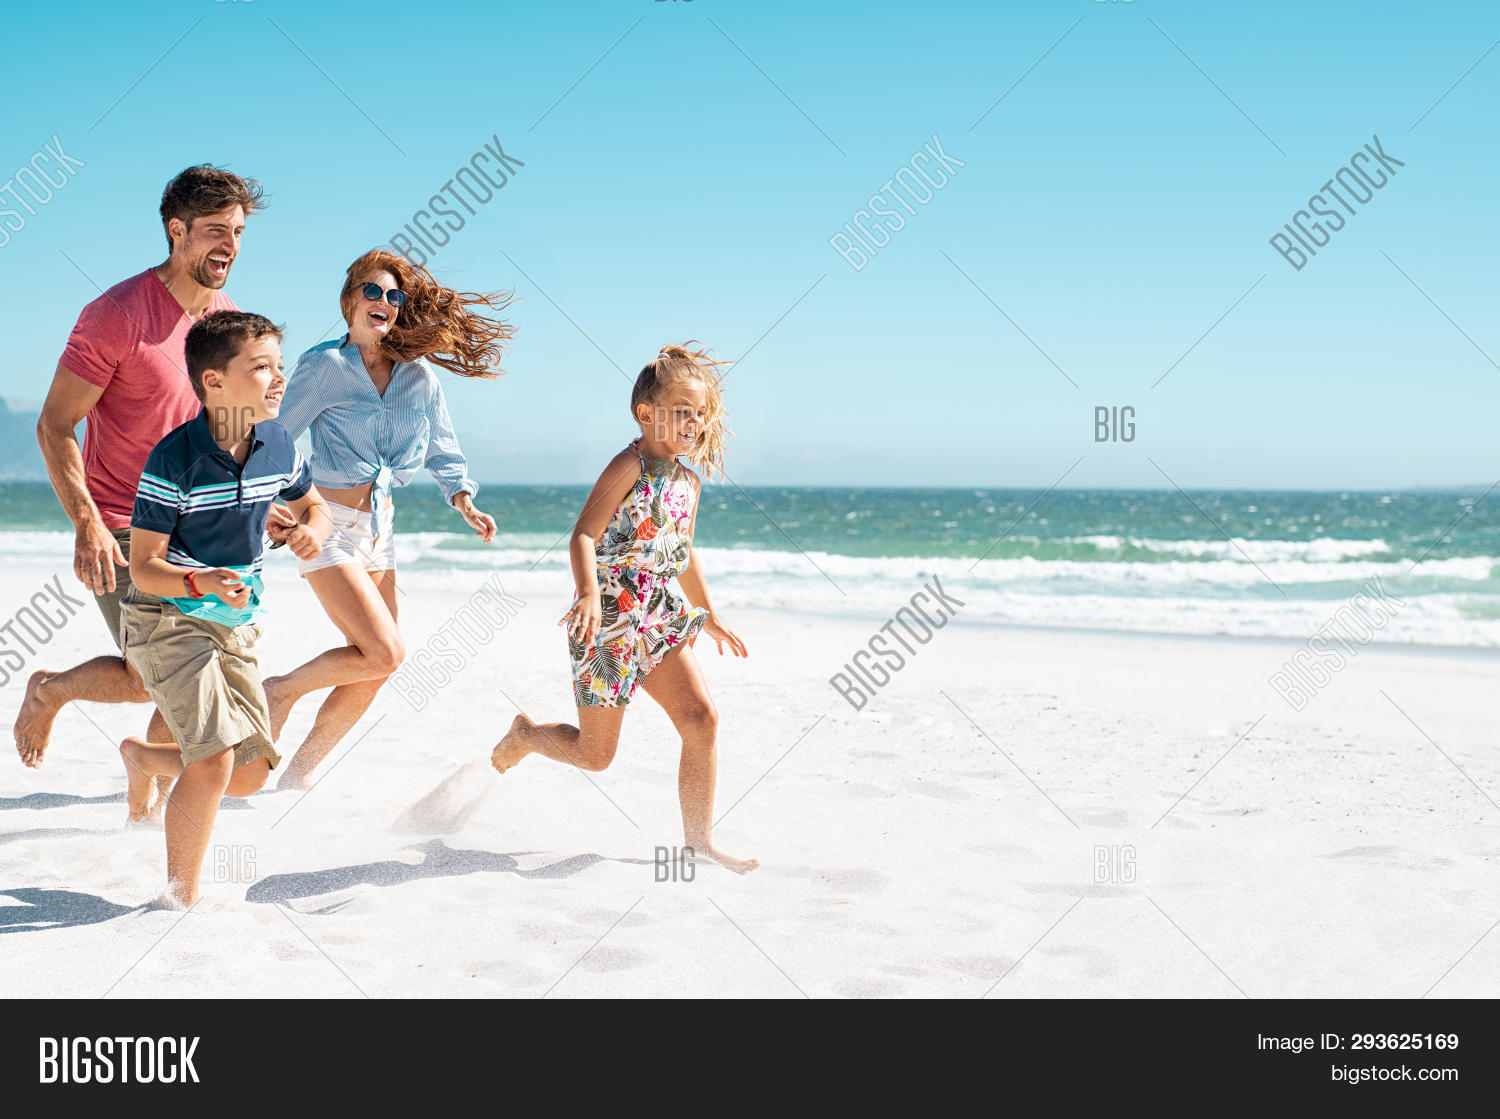 active,beach,boy,brother,carefree,carefree family,casual,cheerful,child,children,content,copy space,daughter,enjoy,family running on beach,family with two children,father,free,fun,girl,happy,healthy,holiday,joyful,kids,laugh,leisure,man,mother,ocean,parent,parents,people,playing,run,running family,sand,sea,sister,sister and brother,smile,son,summer,summer beach,summer holiday,together,vacation,vitality,woman,young